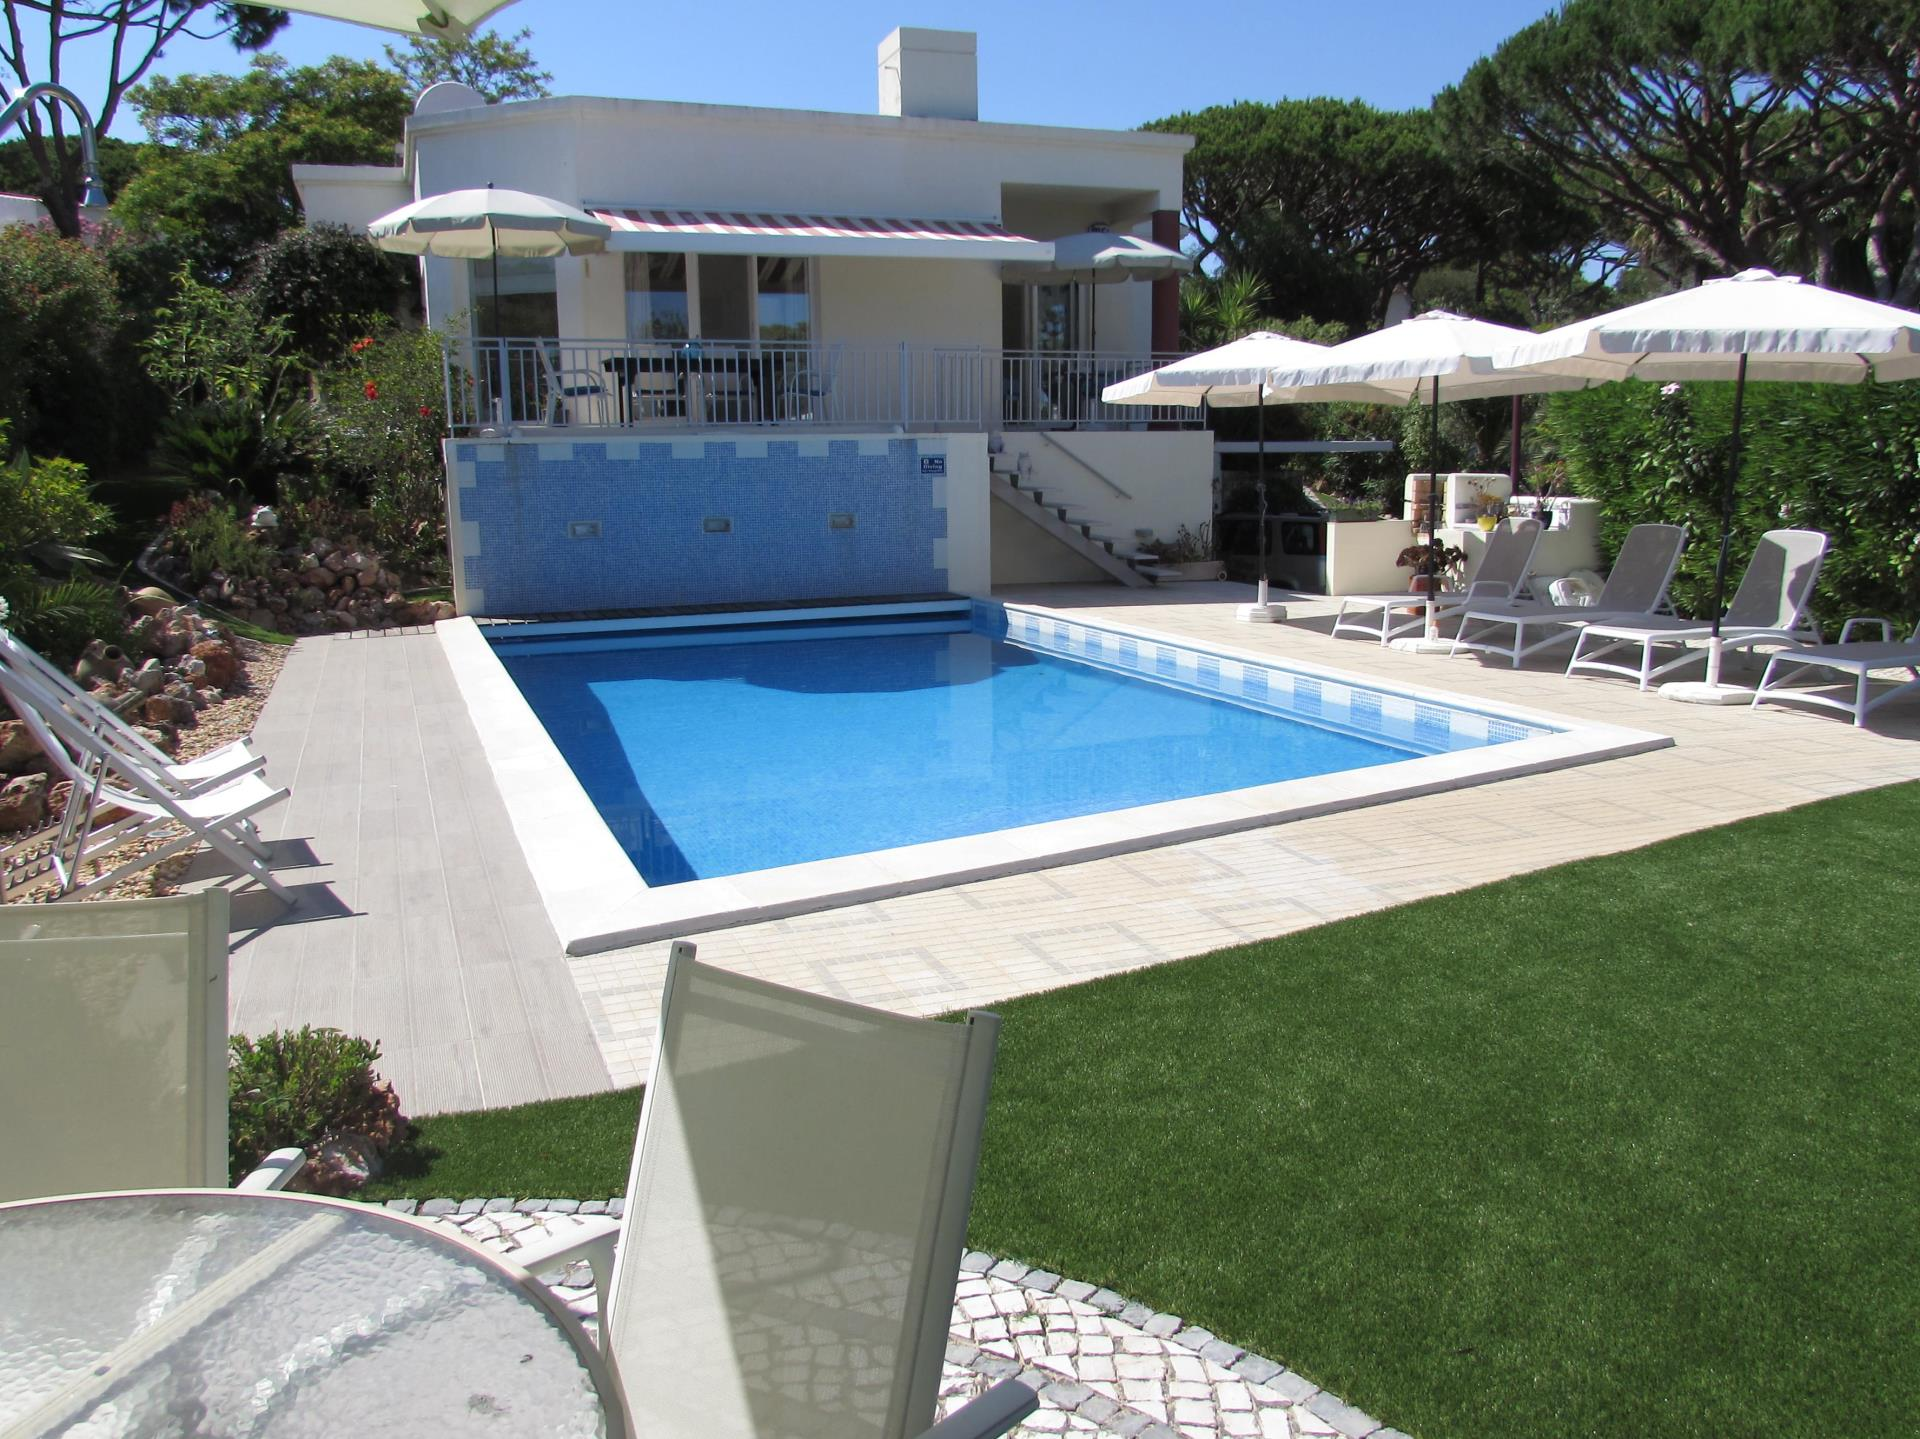 Single Family Home for Sale at Detached house, 3 bedrooms, for Sale Loule, Algarve Portugal